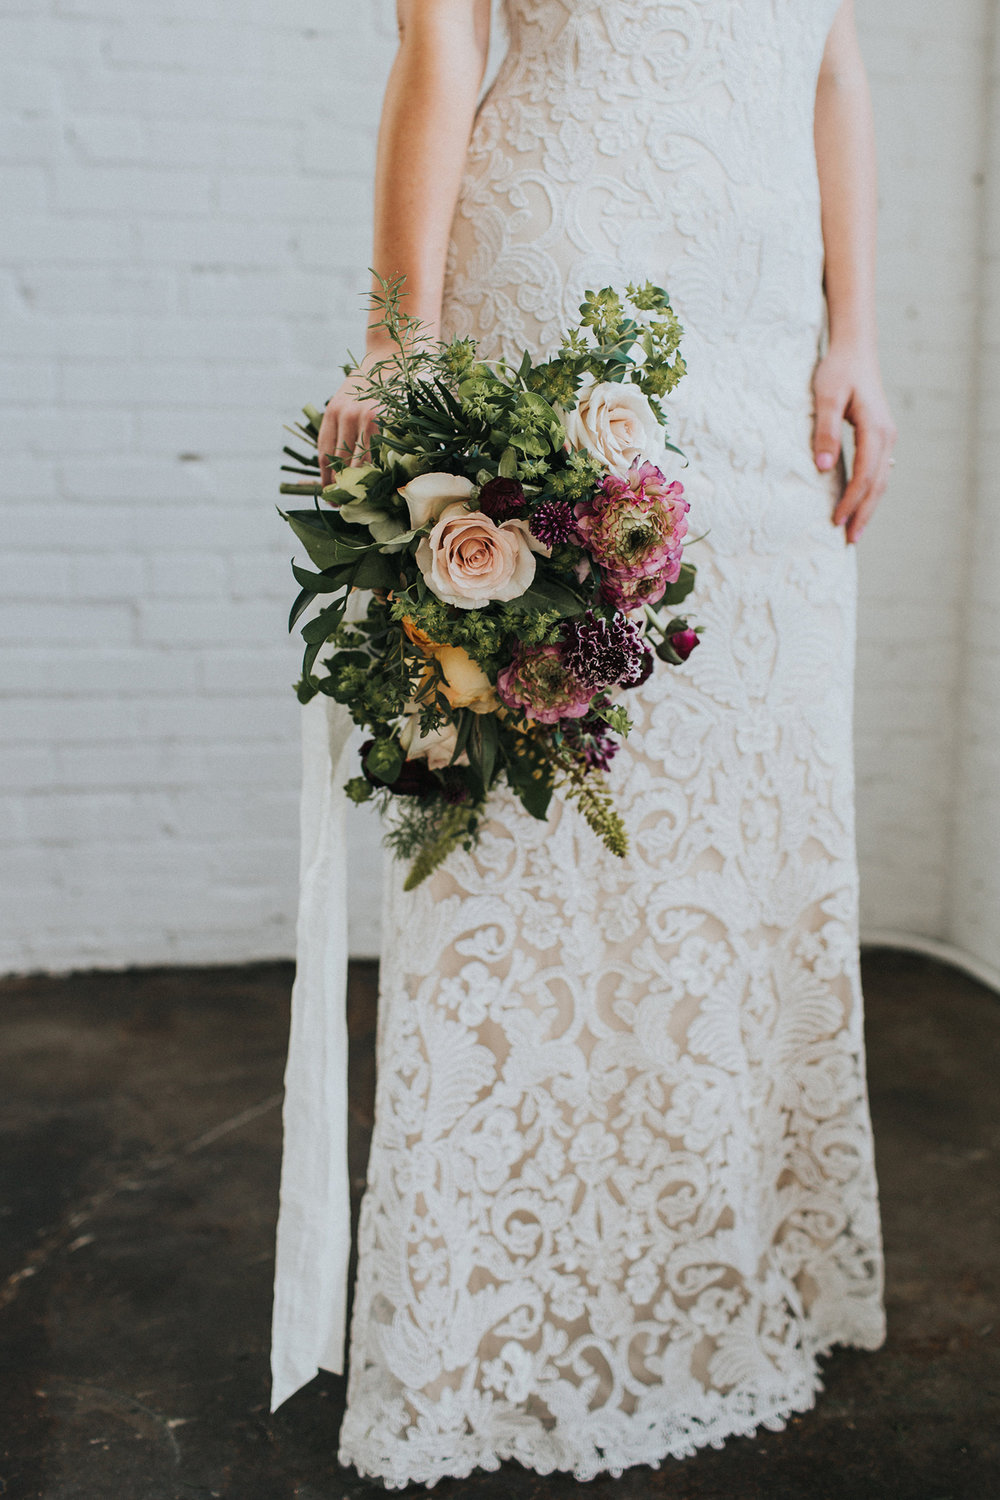 Modern Loft Styled Shoot with Greenery | Floral design by Snapdragon Studio, Photographed by Jacoby Photo and Design at North13th, St. Louis, Missouri